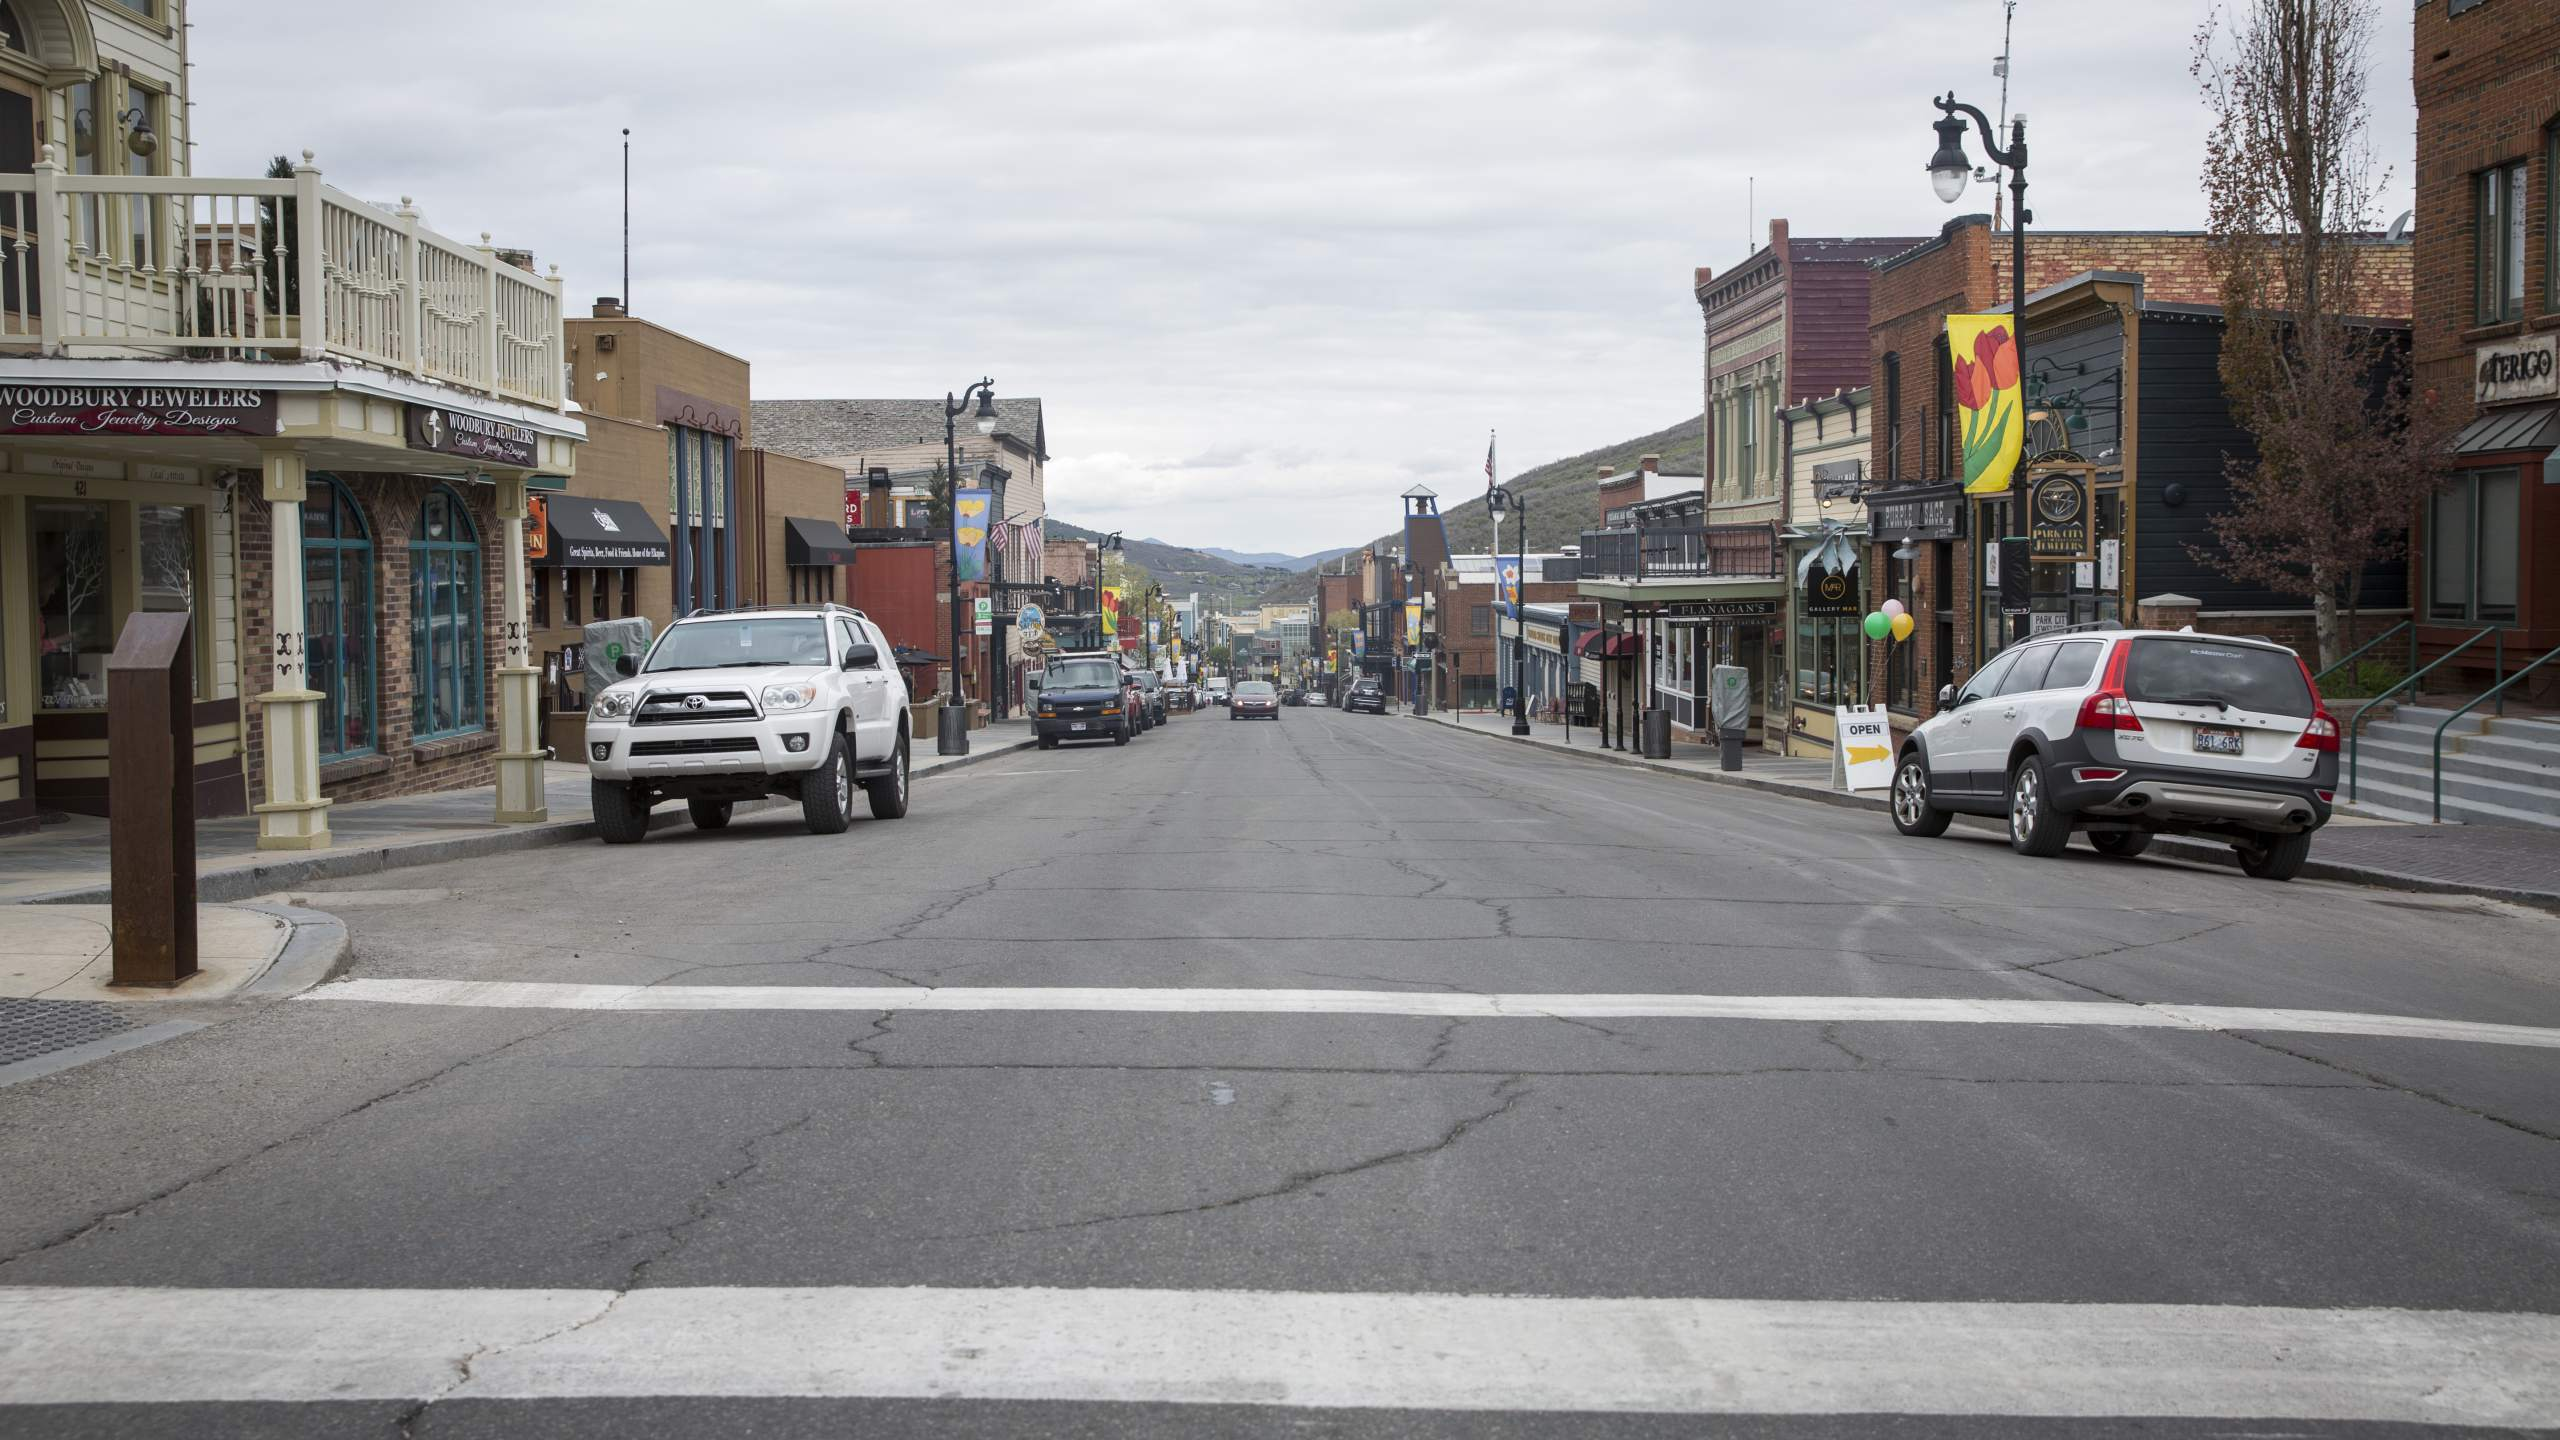 Park City receives formal request to pedestrianize Main Street once weekly